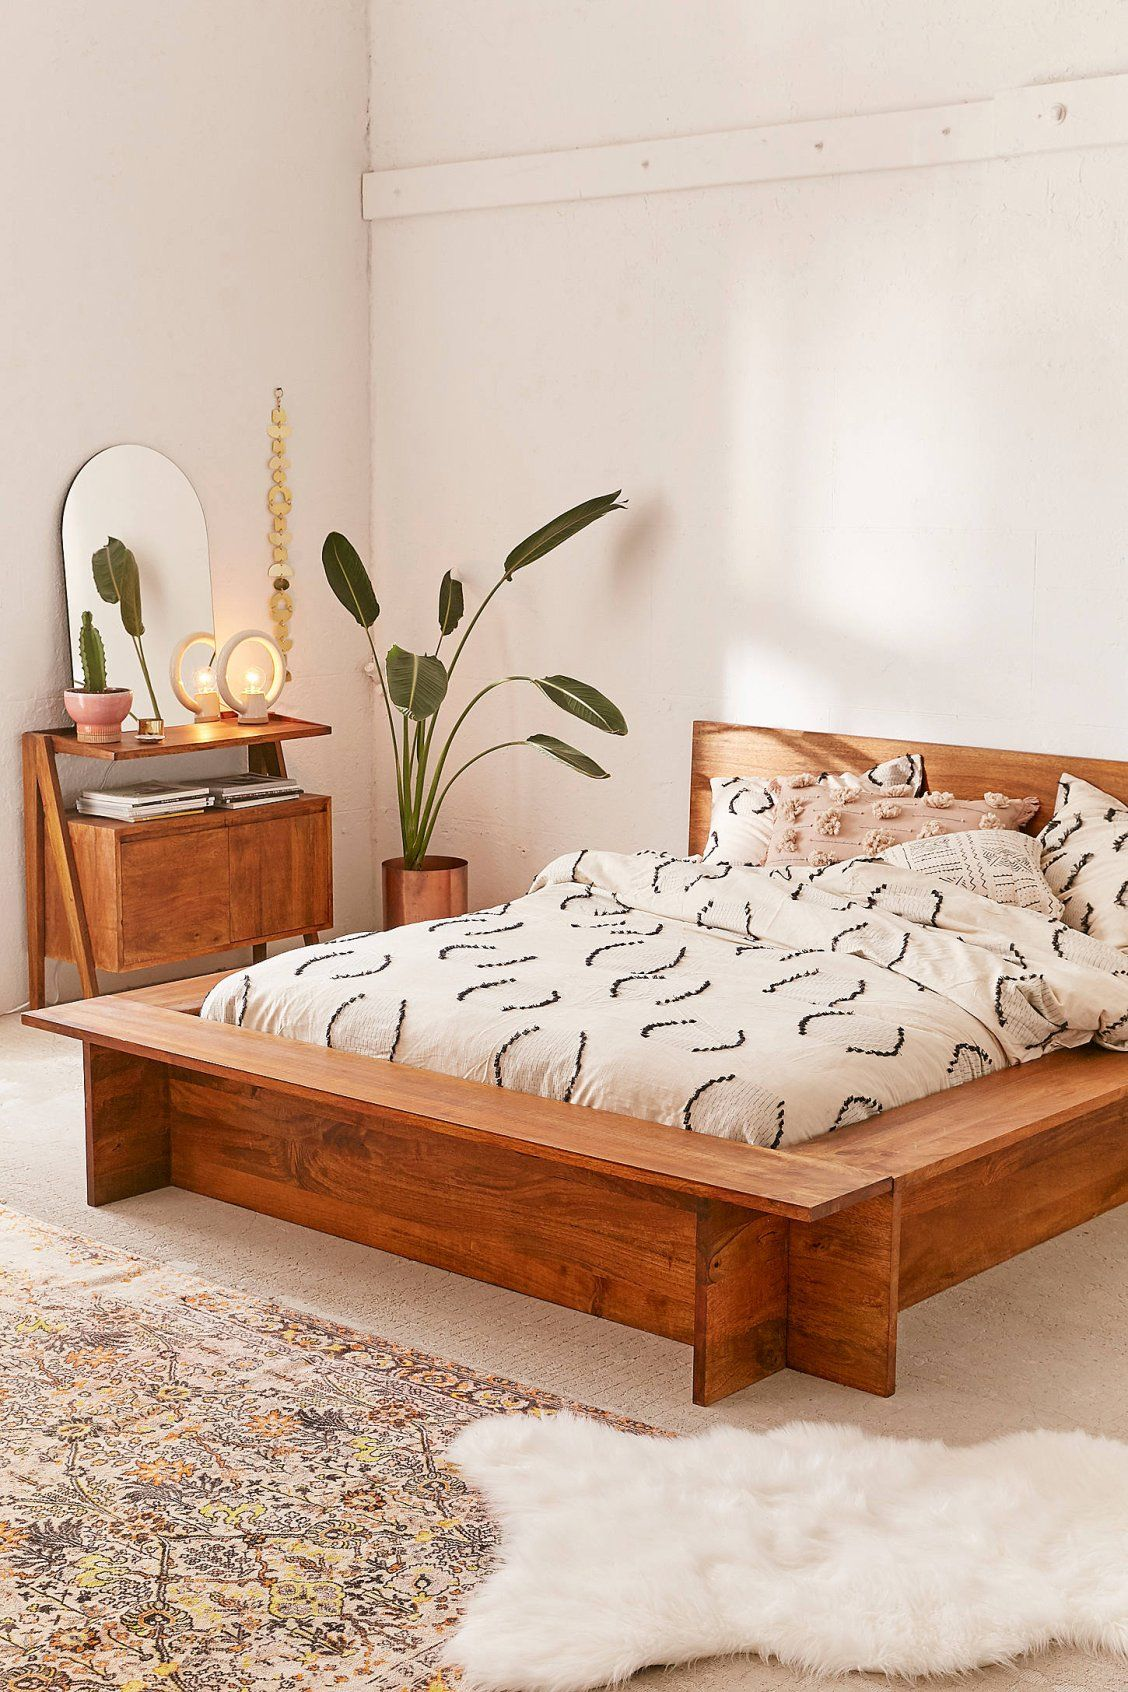 Modern Boho Platform Bed Frame | Home decor bedroom ... on Modern Boho Bed Frame  id=47153